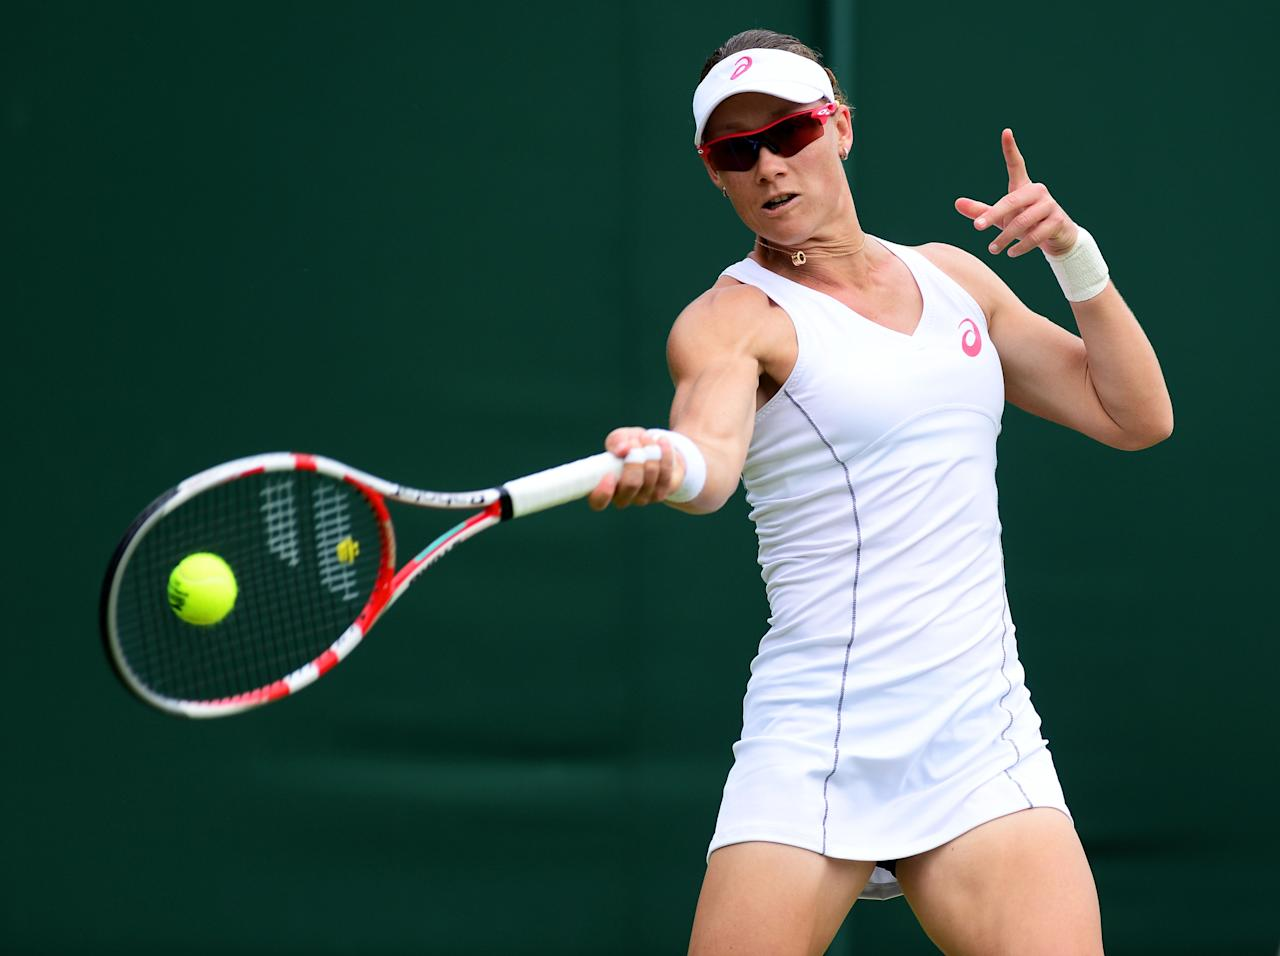 LONDON, ENGLAND - JUNE 27: Samantha Stosur of Australia plays a forehand during the Ladies' Singles second round match against Olga Puchkova of Russia on day four of the Wimbledon Lawn Tennis Championships at the All England Lawn Tennis and Croquet Club on June 27, 2013 in London, England. (Photo by Mike Hewitt/Getty Images)